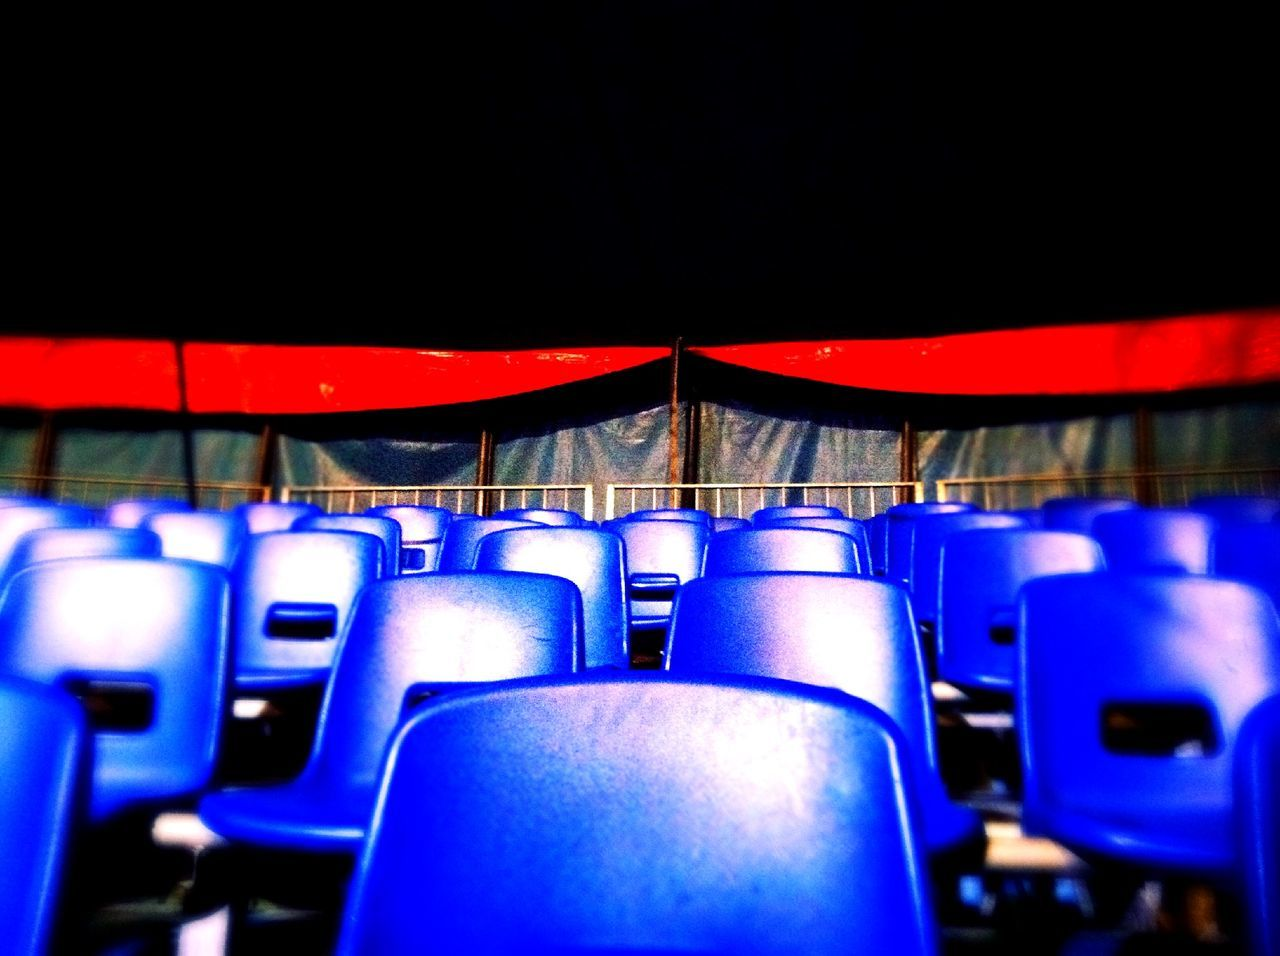 View of blue chairs in auditorium